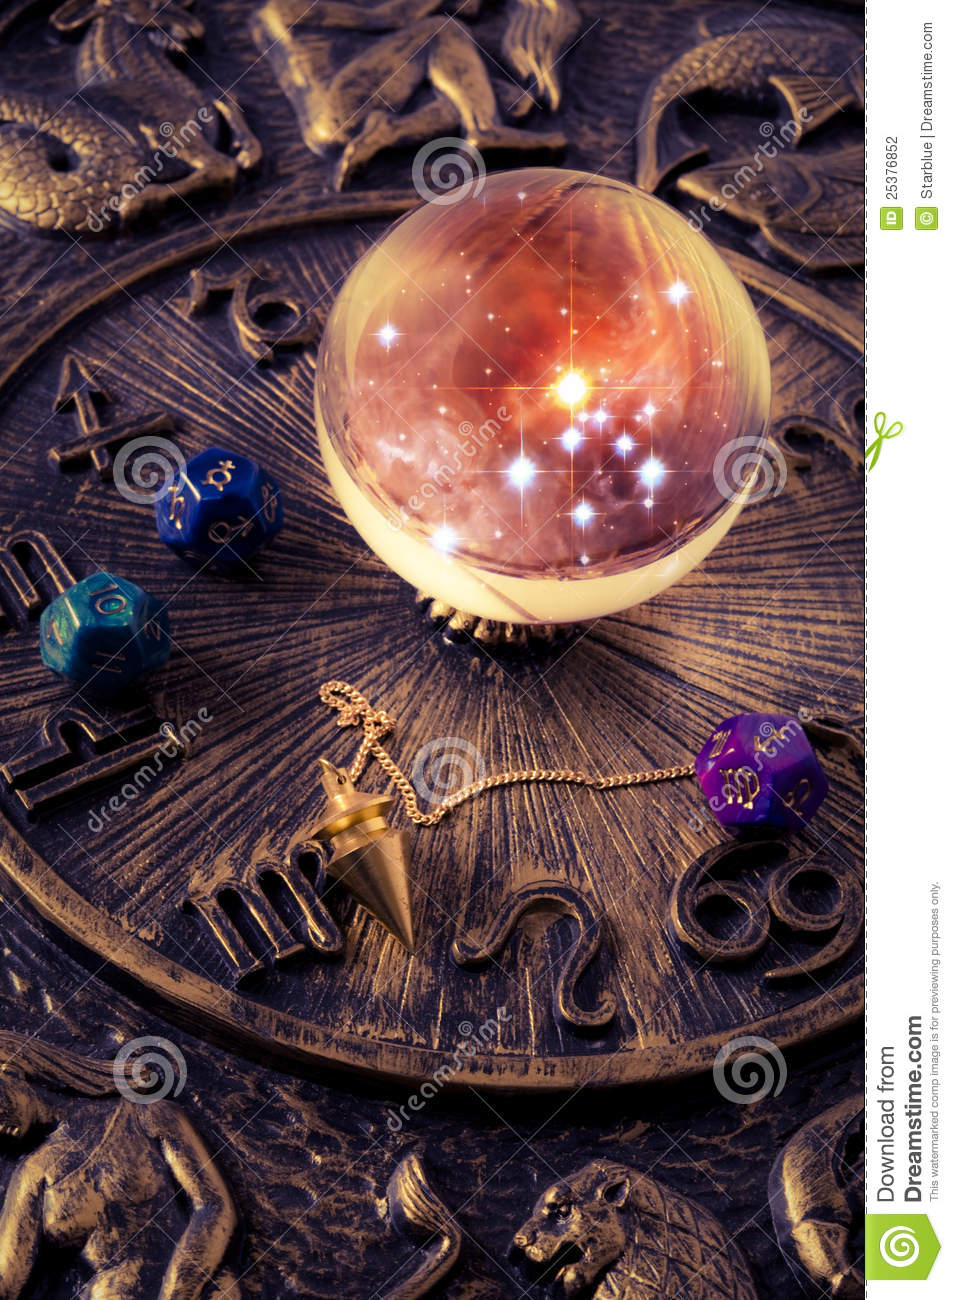 Stock Photography Esoteric Tools Image25376852